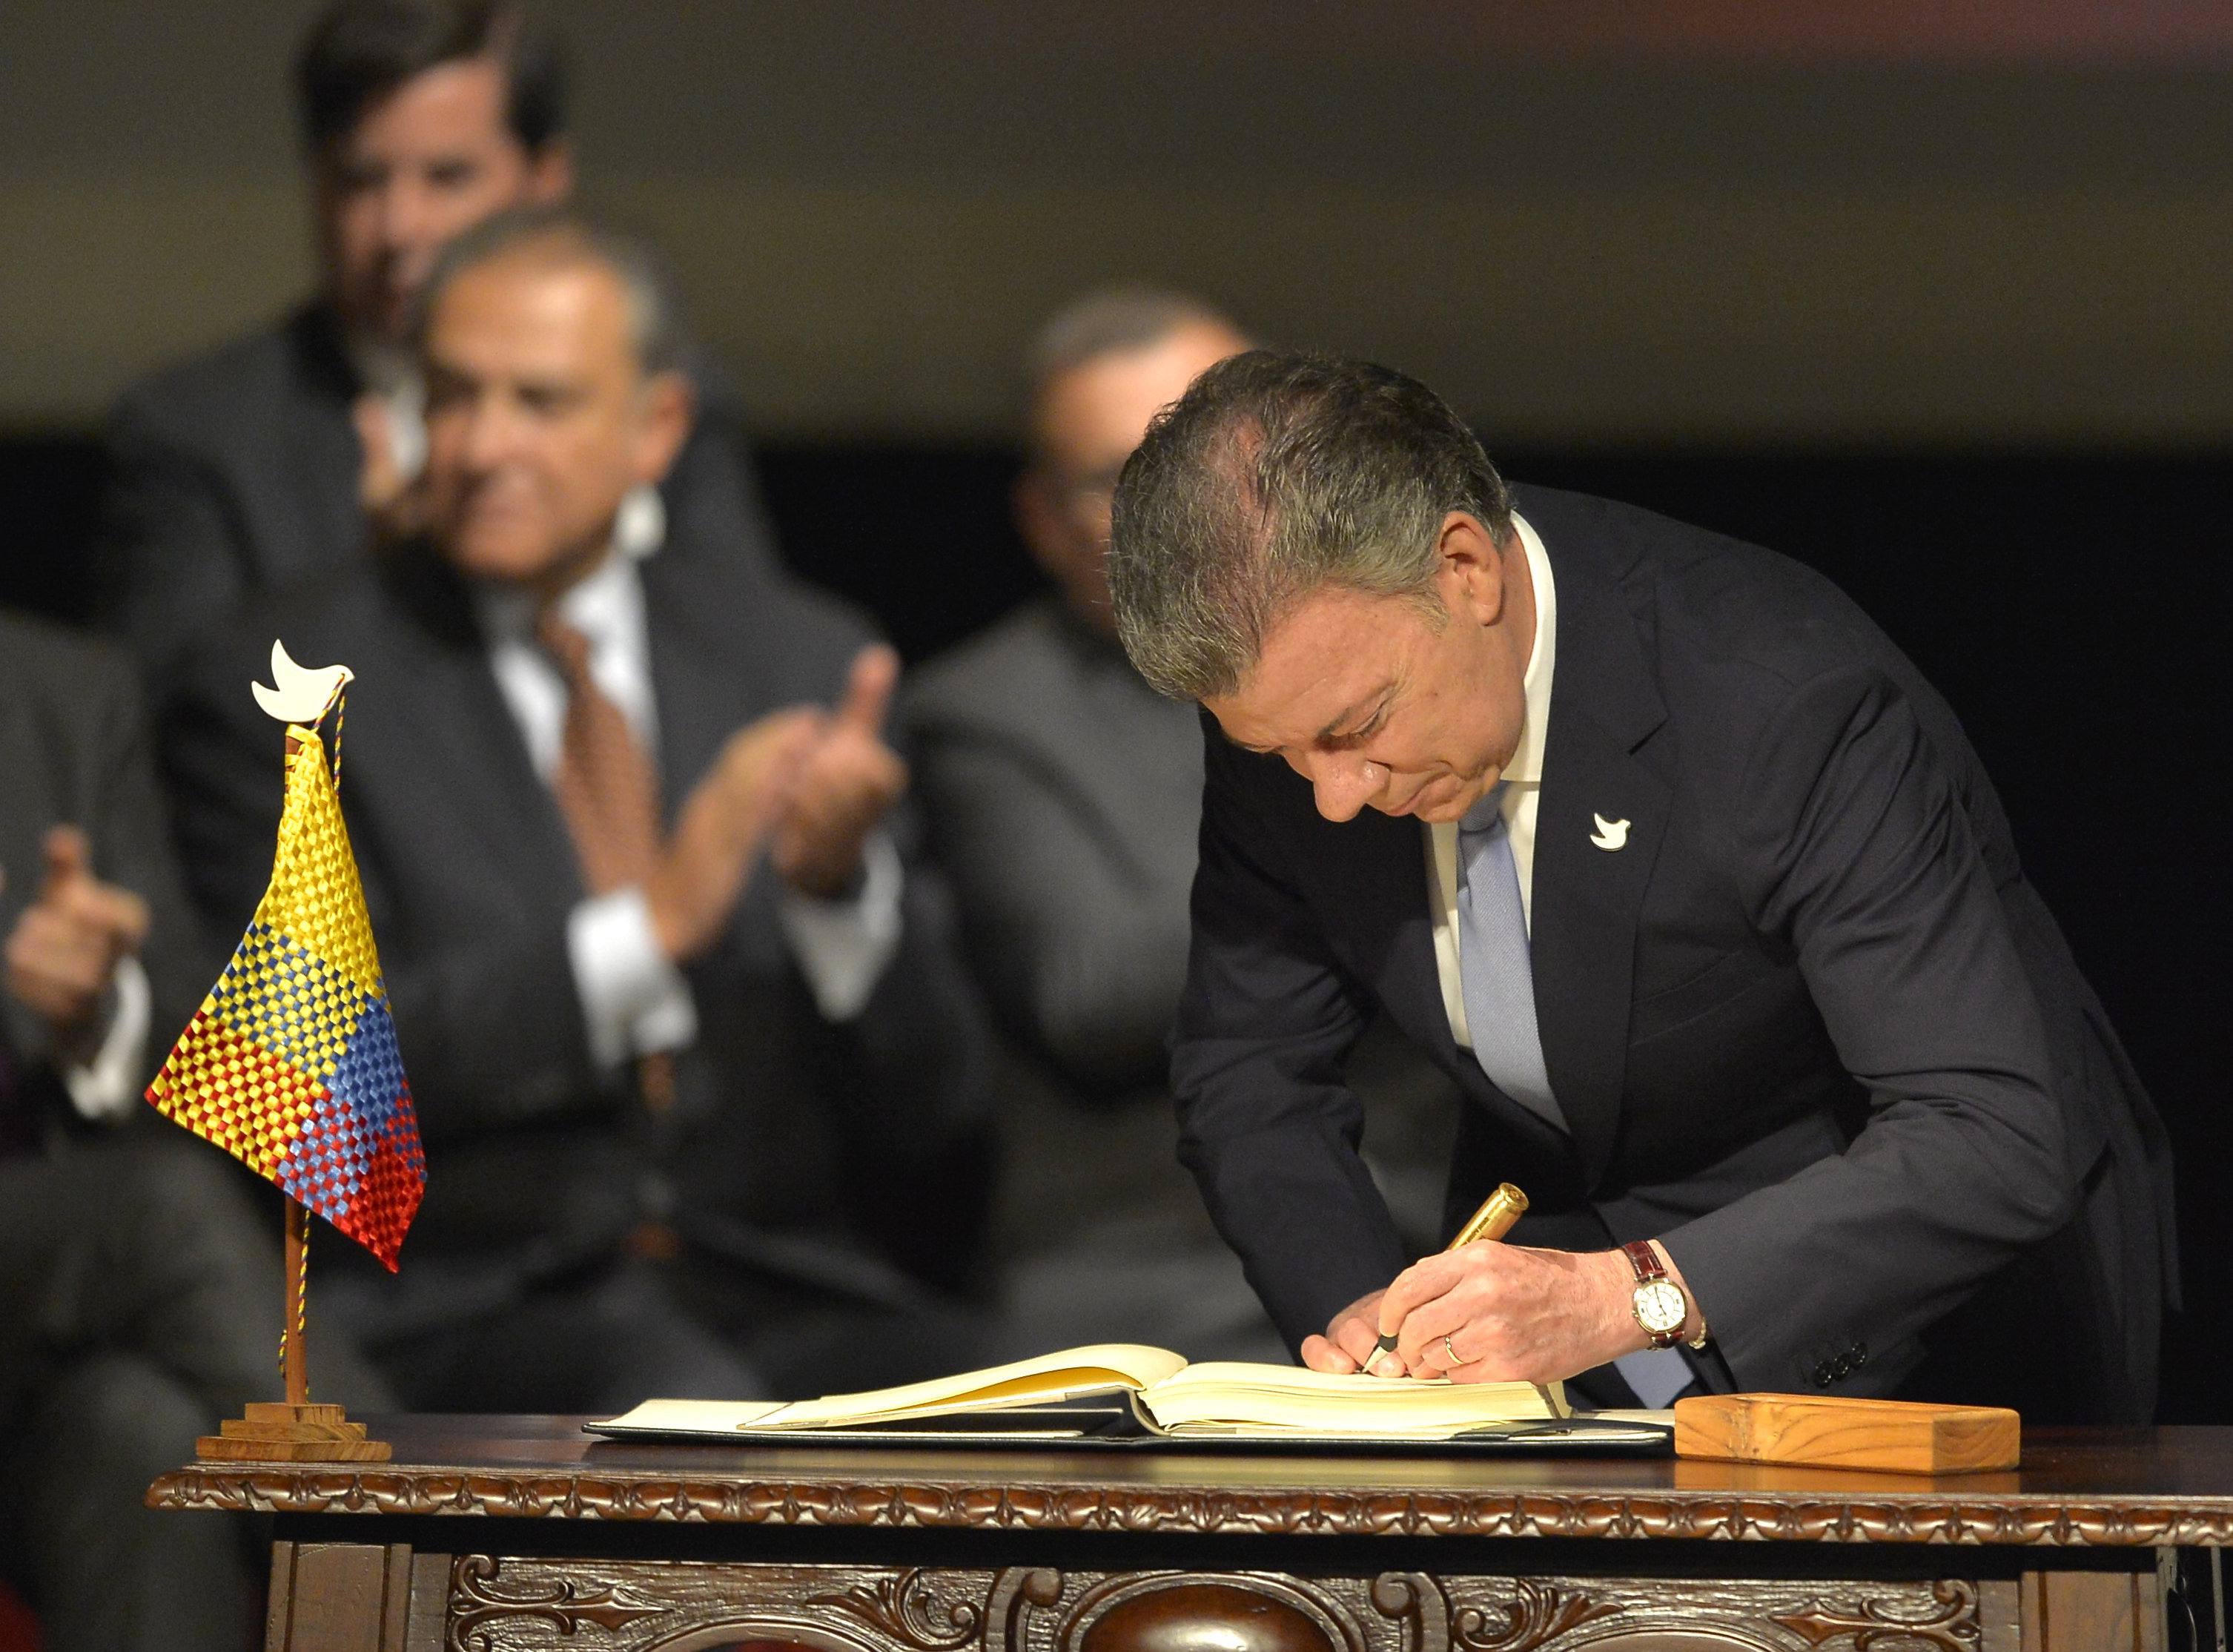 Colombian President Juan Manuel Santos (L) signs the historic peace agreement between the Colombian government and the Revolutionary Armed Forces of Colombia (FARC), at the Colon Theater in Bogota, Colombia, on November 24, 2016